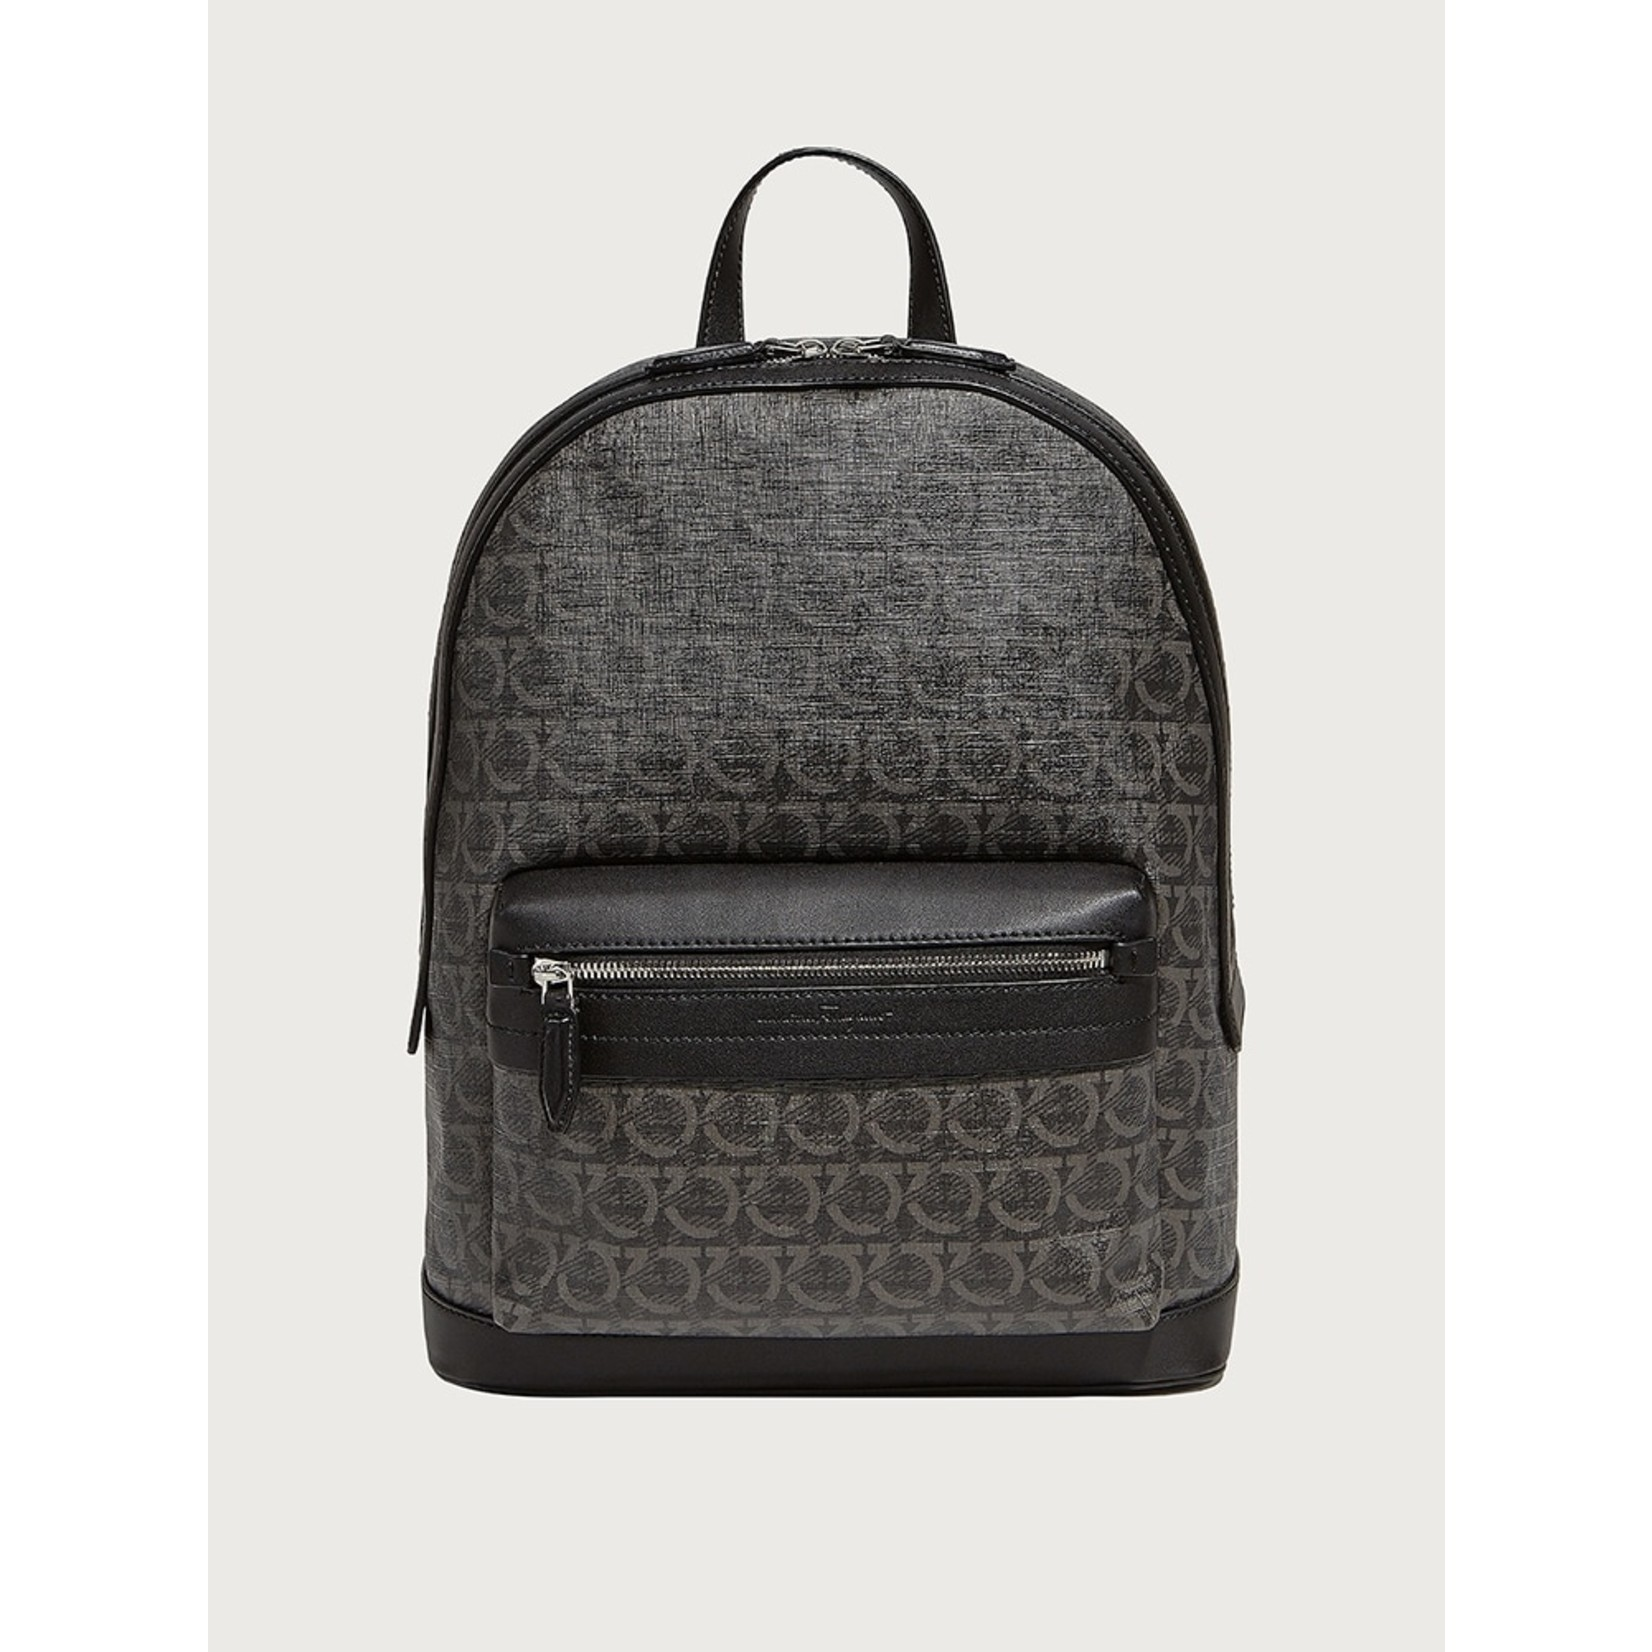 SALVATORE FERRAGAMO SALVATORE FERRAGAMO - BACKPACK GANCINI - 716629